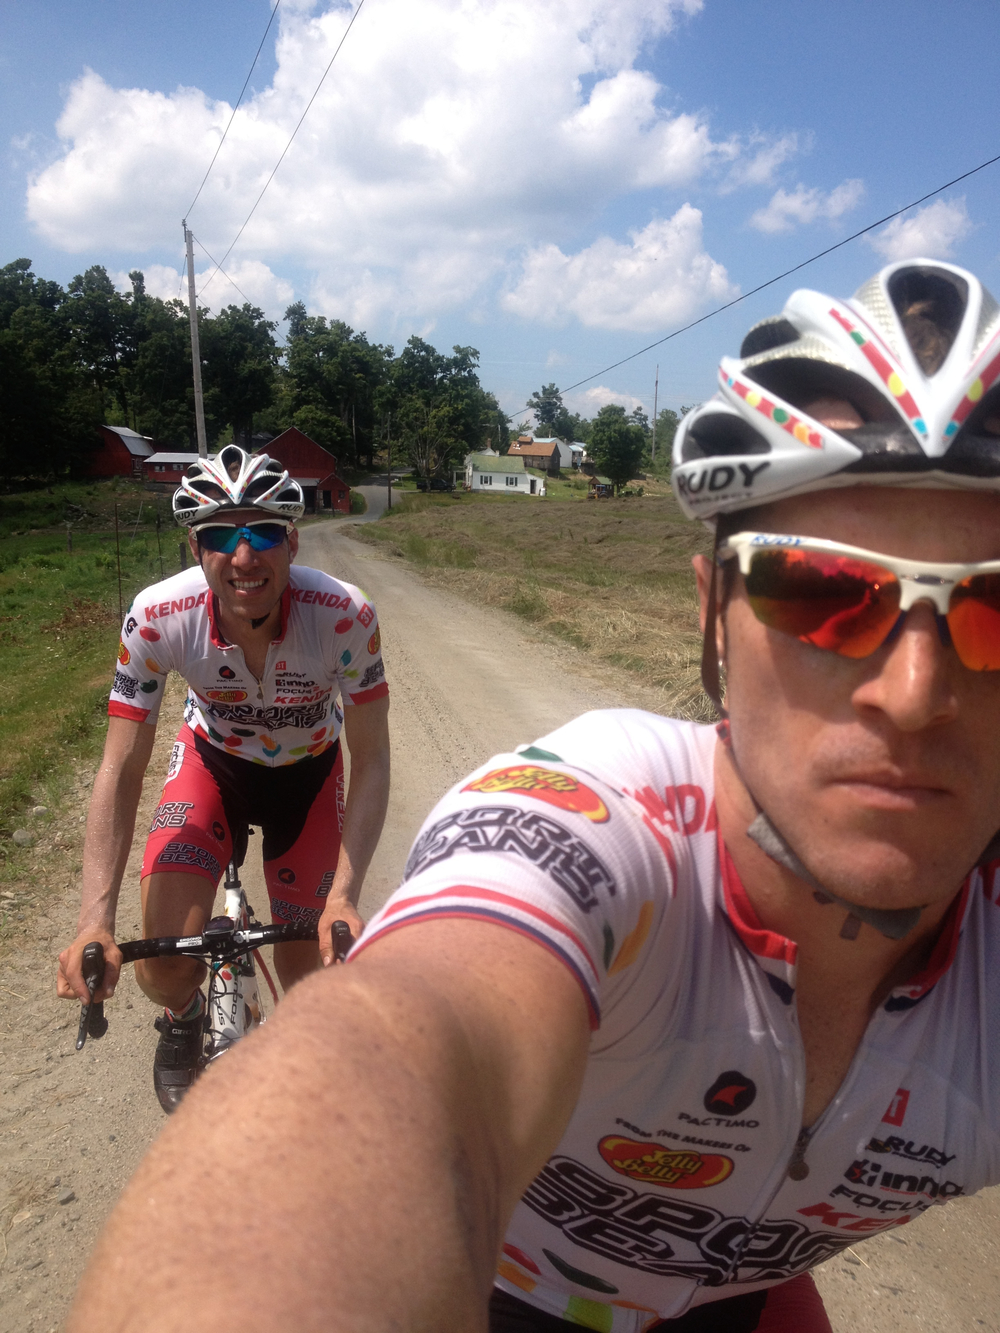 Huff and Powers raced together on the road for the Jelly Belly Cycling Team during 2008 to 2013.